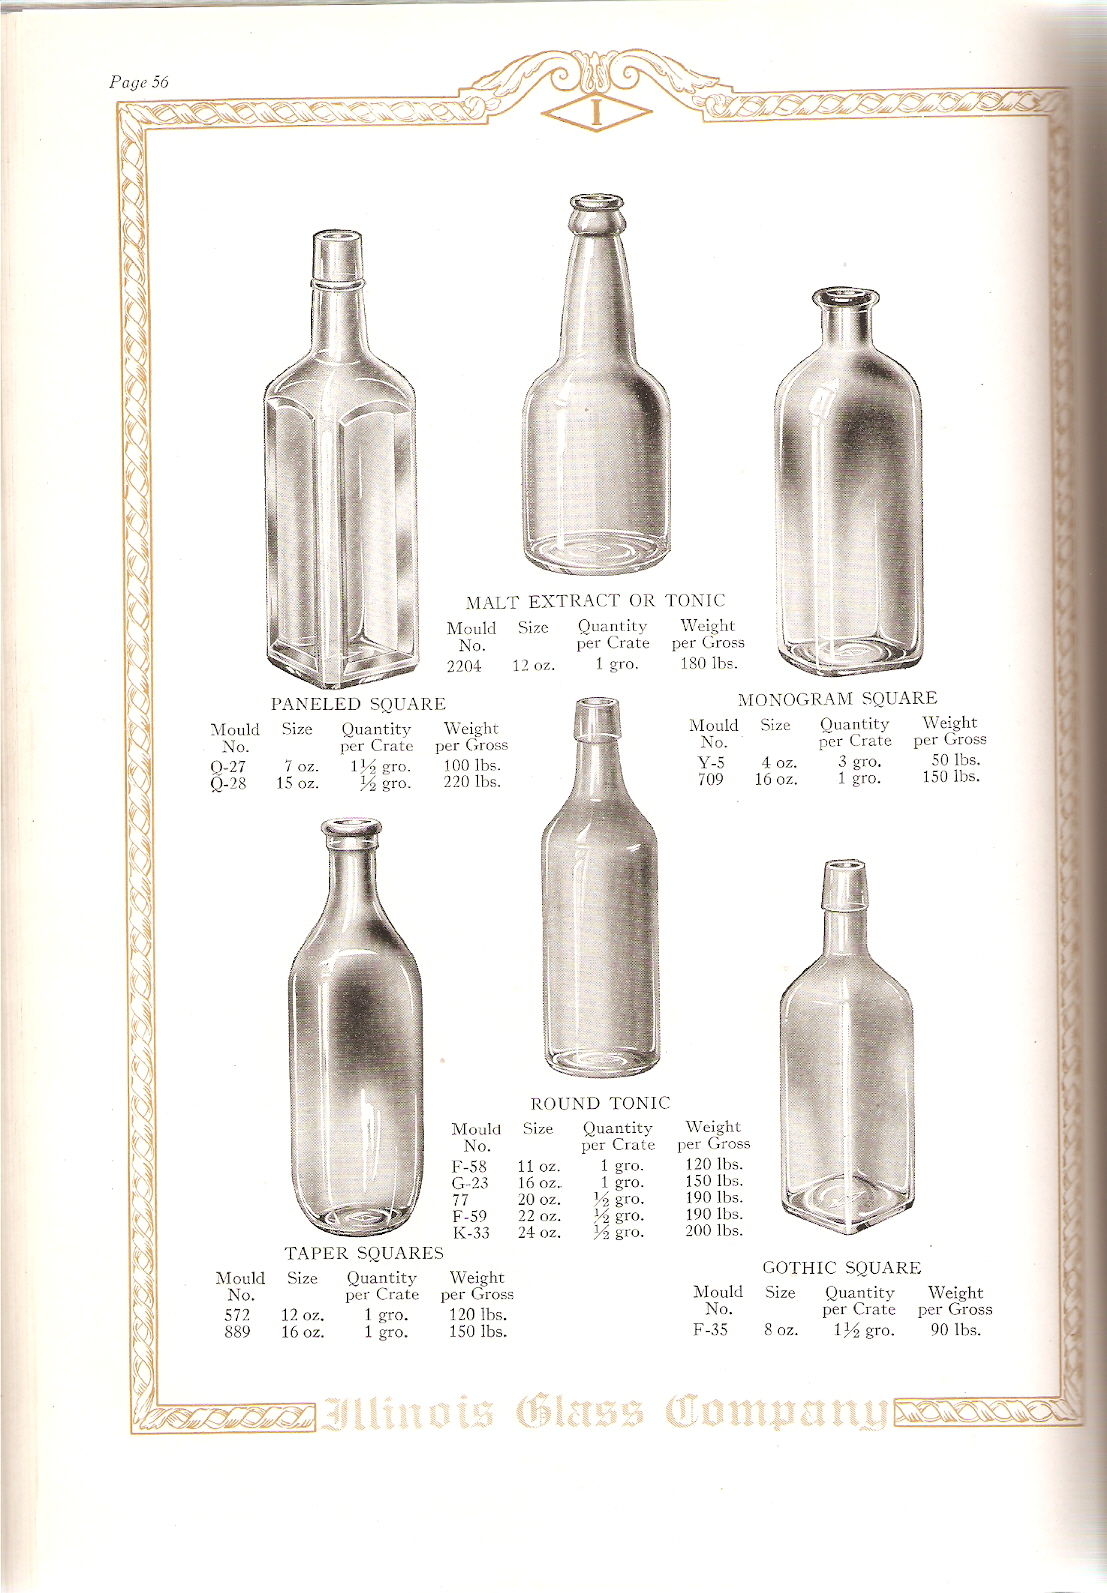 Page 56 - Various types (paneled square, malt extract or tonic, round  tonic, and others)